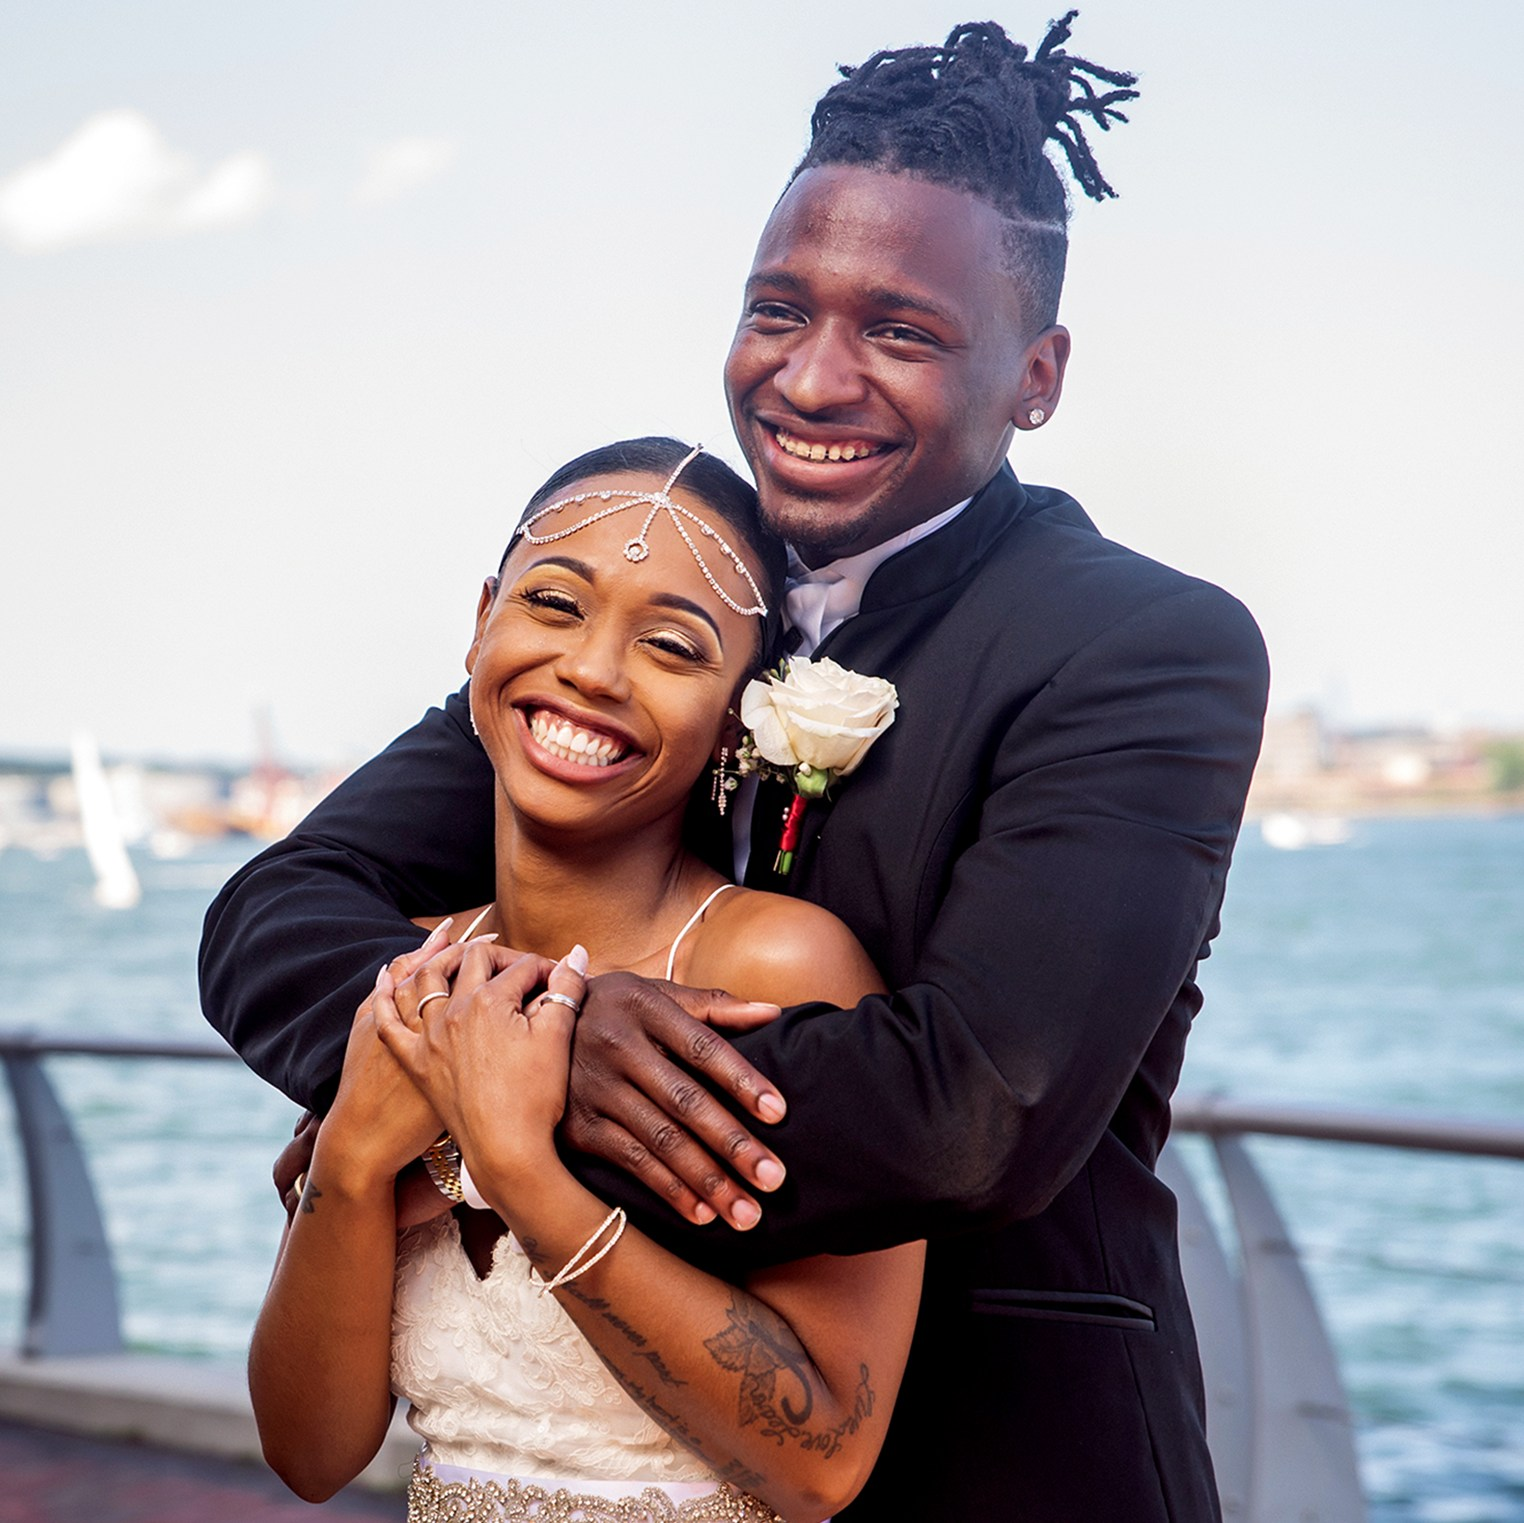 Shawniece Jackson and Jephte Pierre star in season 6 of 'Married at First Sight'